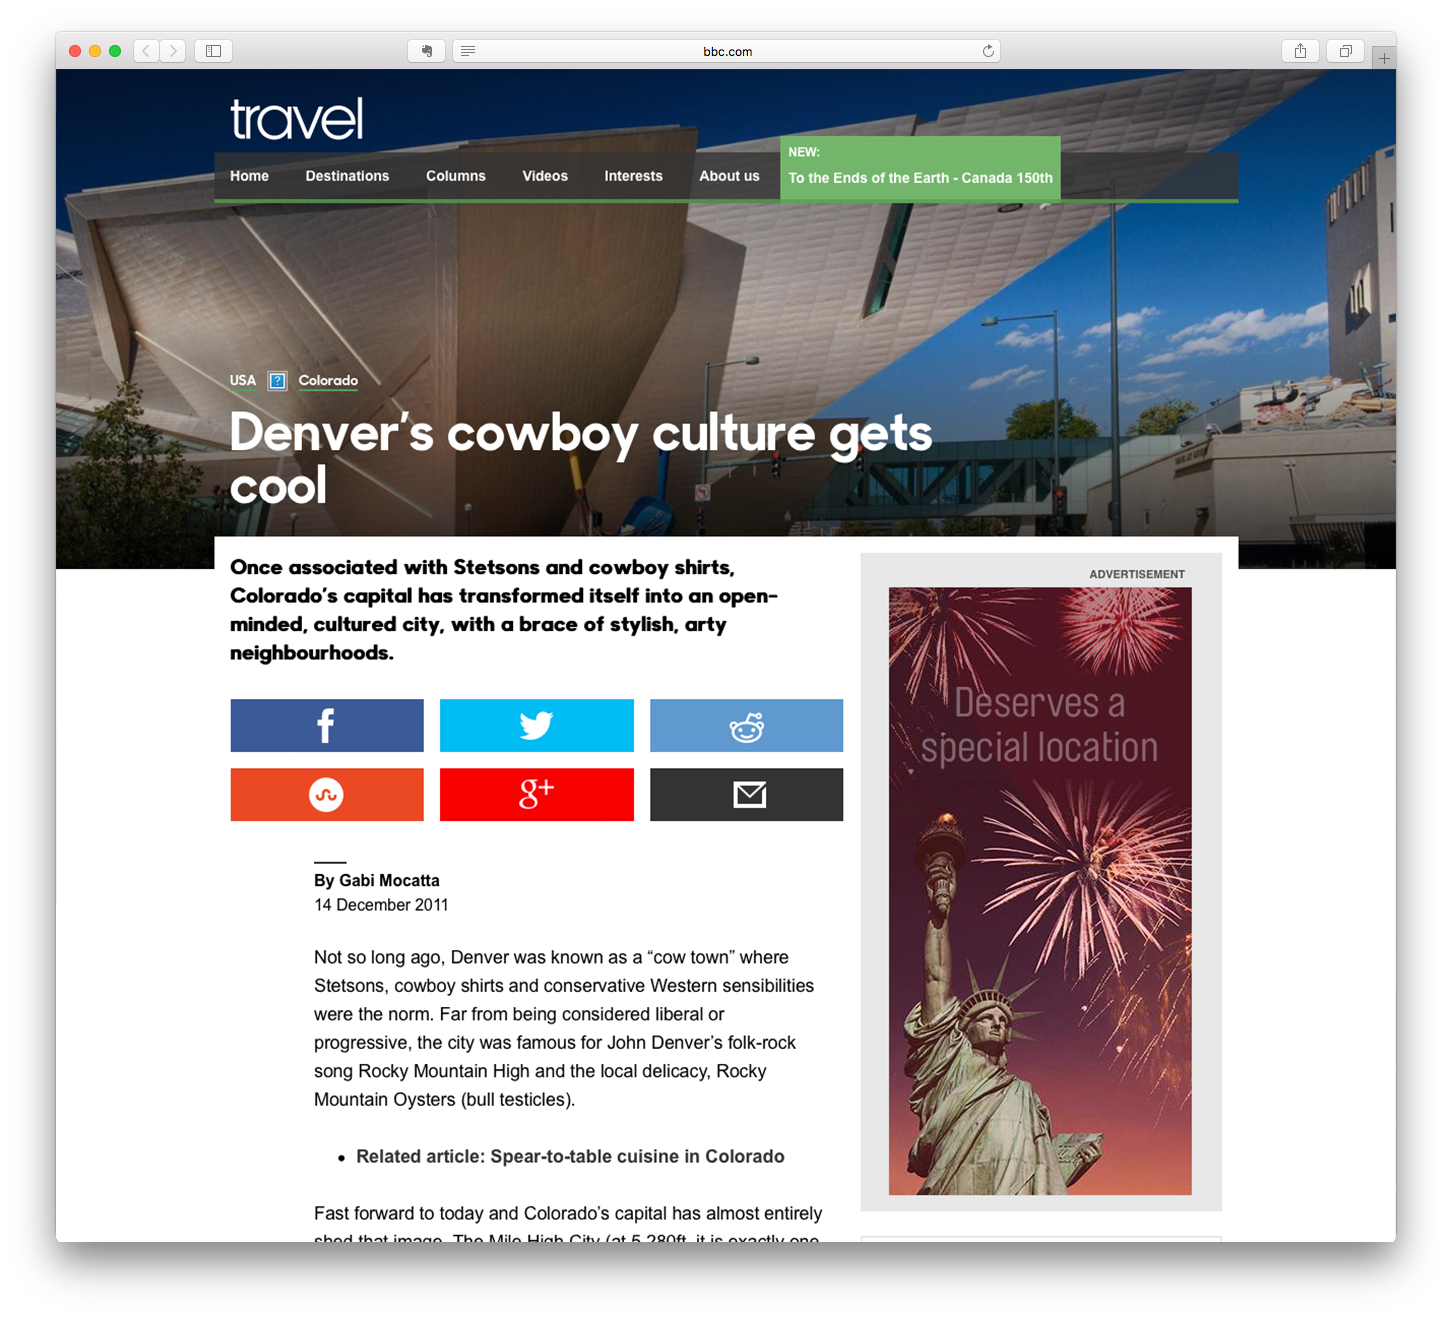 Denver's cowboy culture gets cool